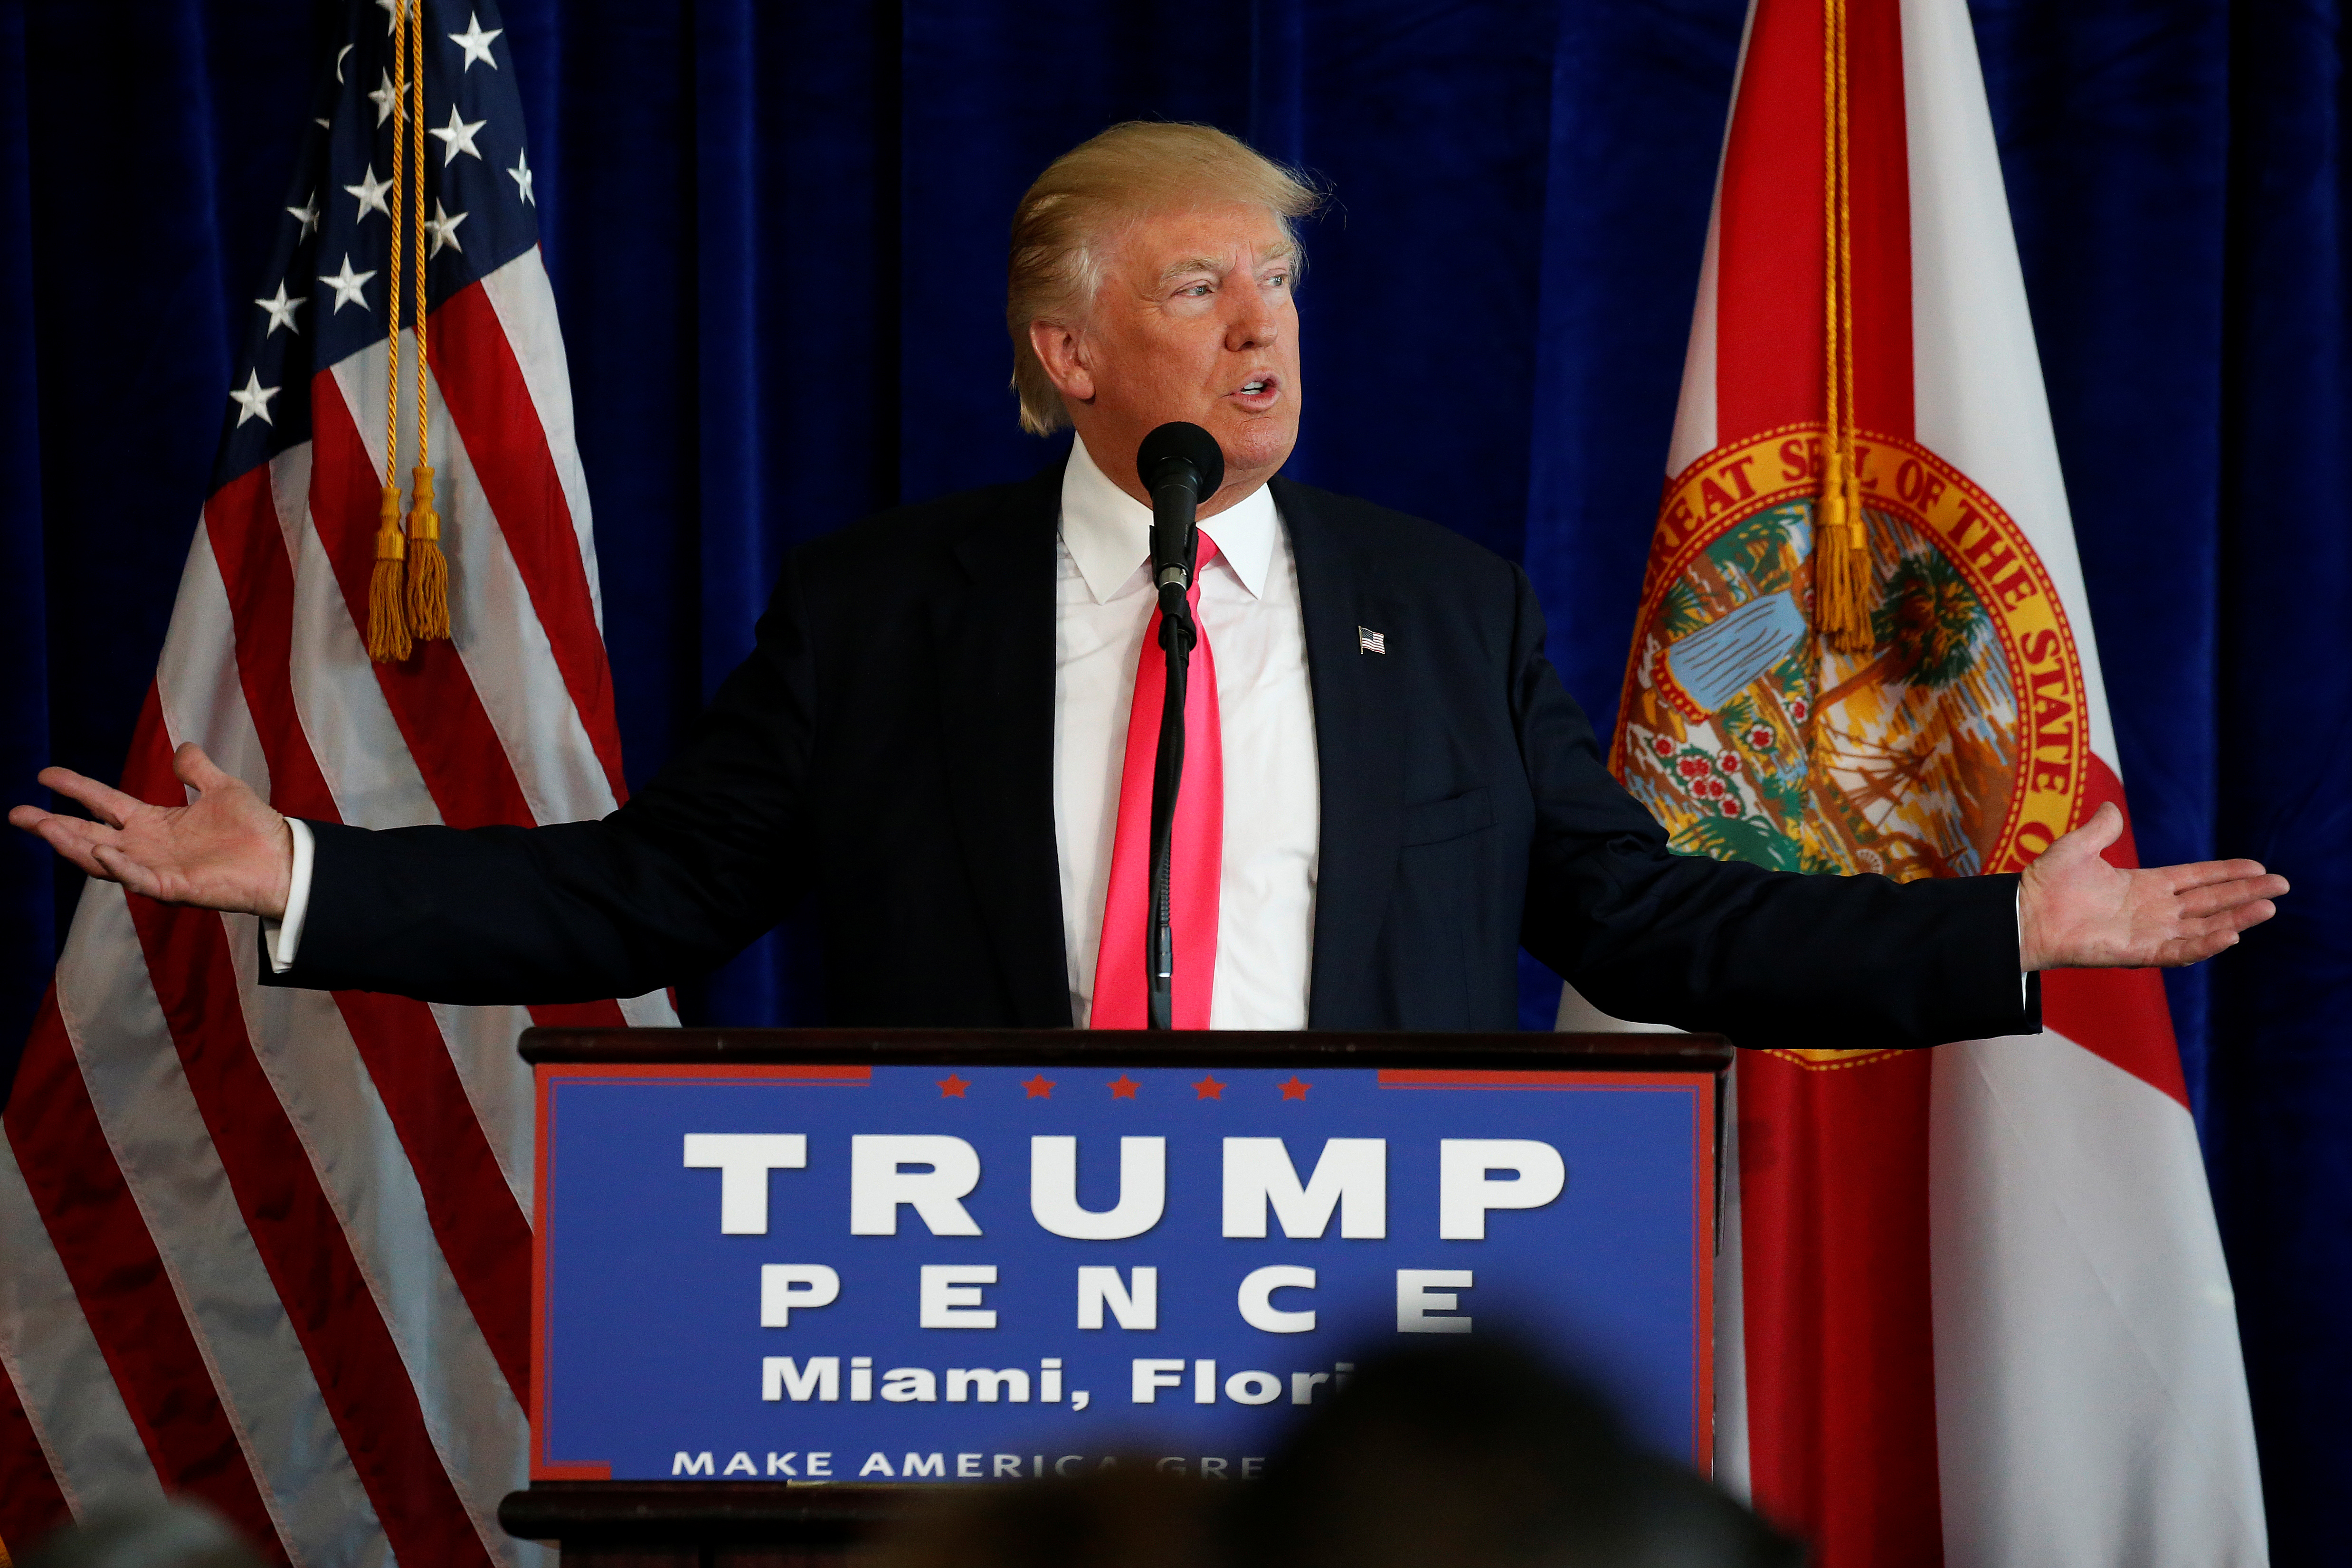 Republican presidential nominee Donald Trump speaks at a campaign event at Trump Doral golf course in Miami, Florida, U.S., July 27, 2016.